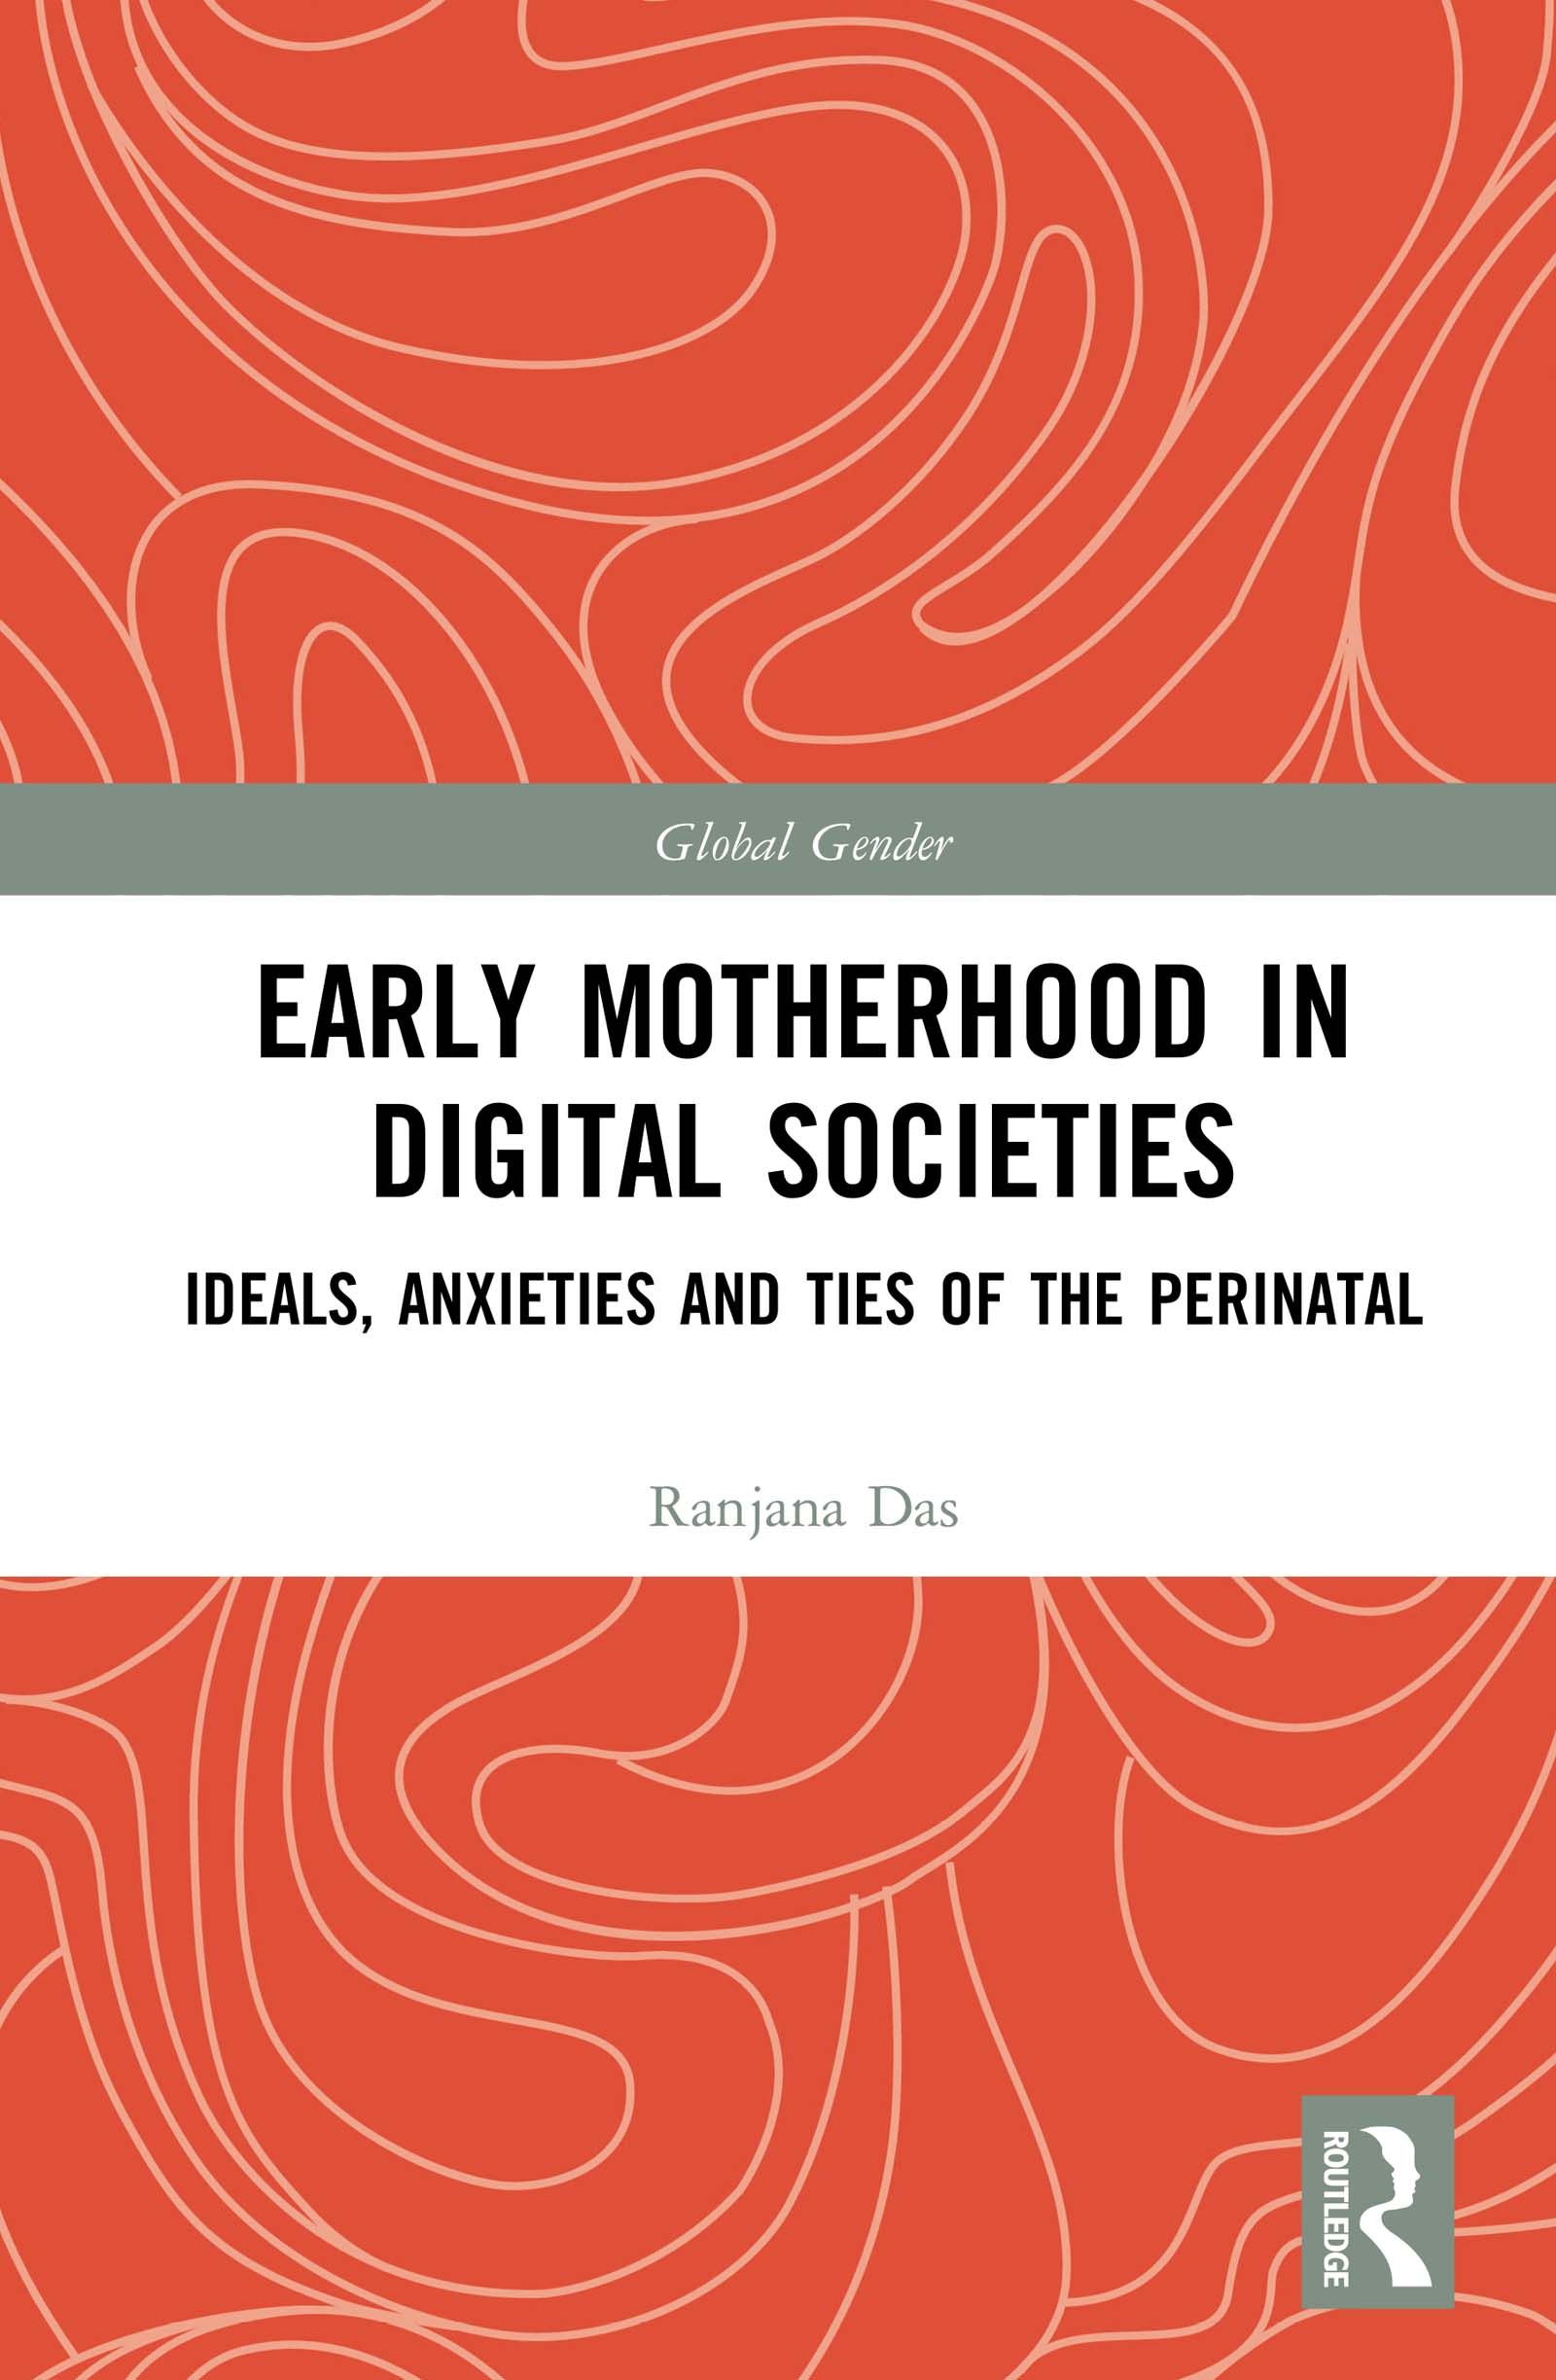 Early Motherhood in Digital Societies: Ideals, Anxieties and Ties of the Perinatal book cover